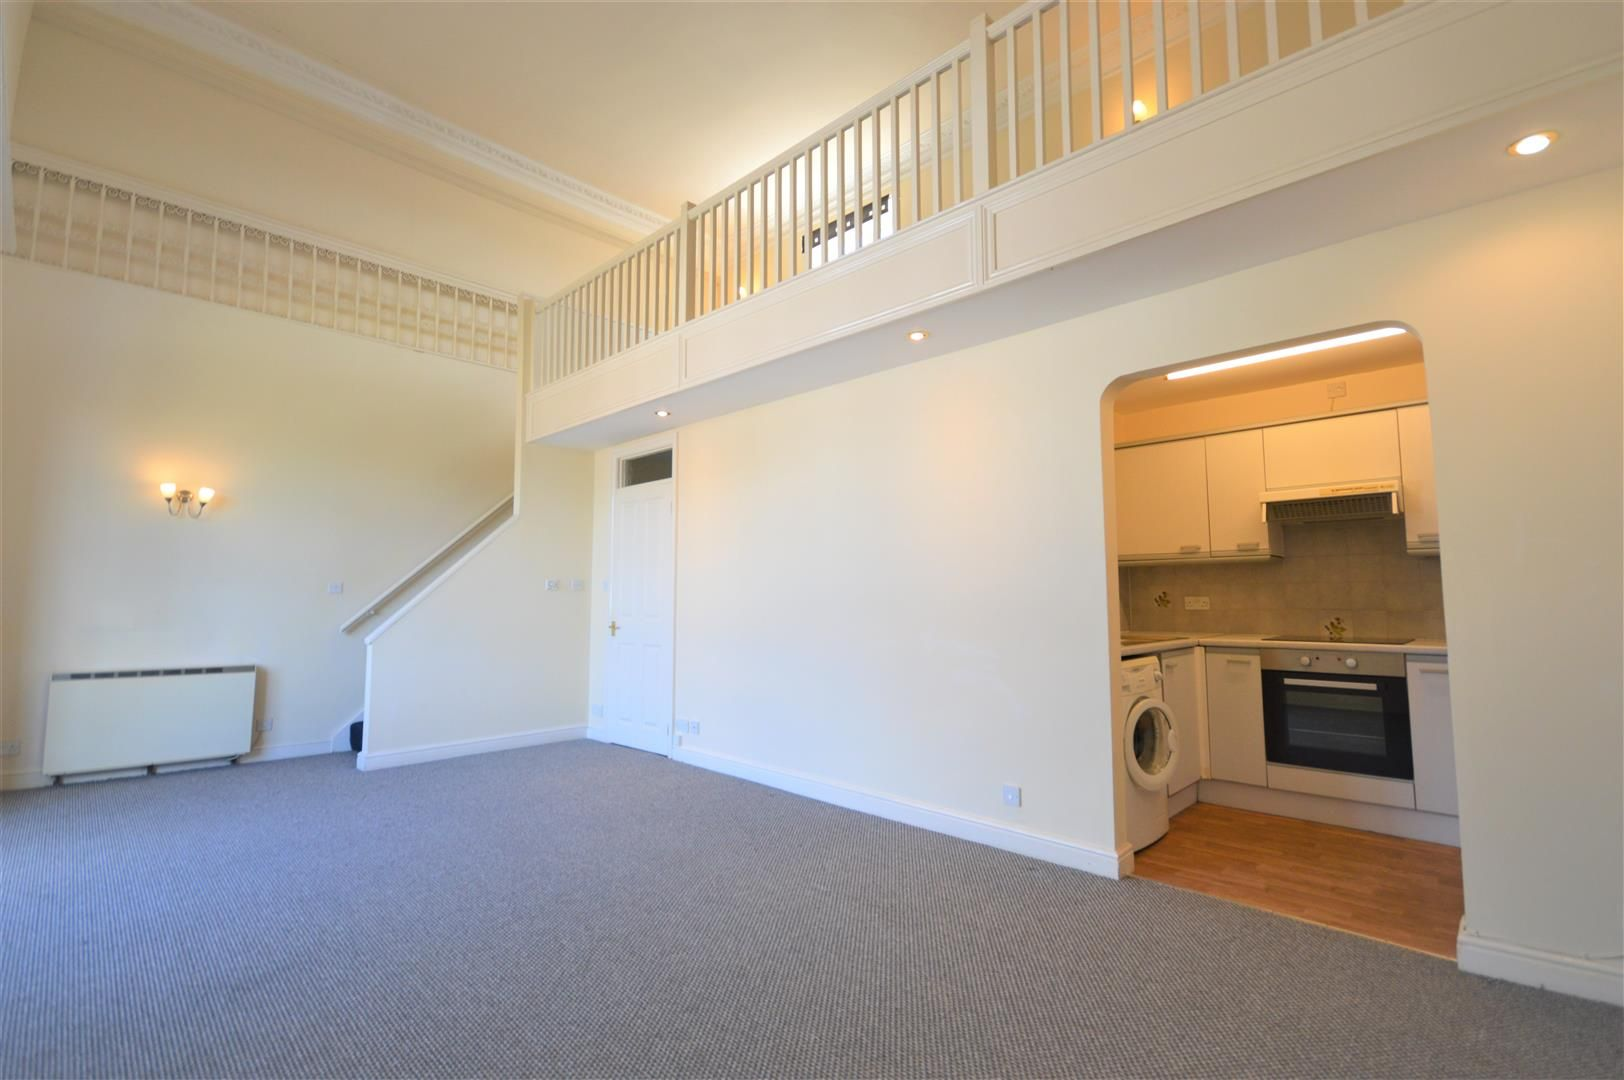 1 bed flat for sale in Leominster 3